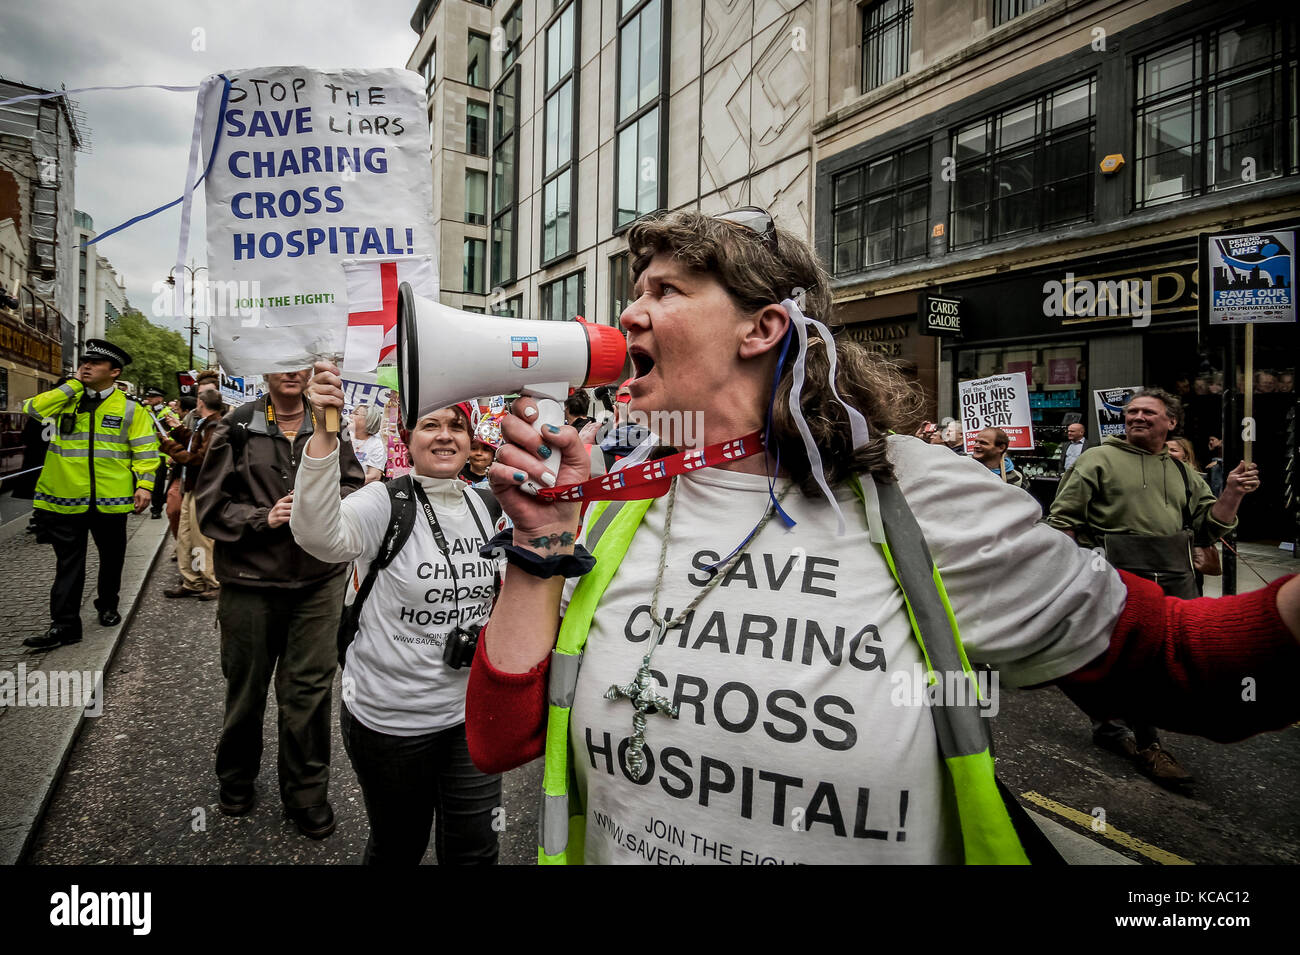 Protesters march and rally over NHS reforms. London, UK. Stock Photo